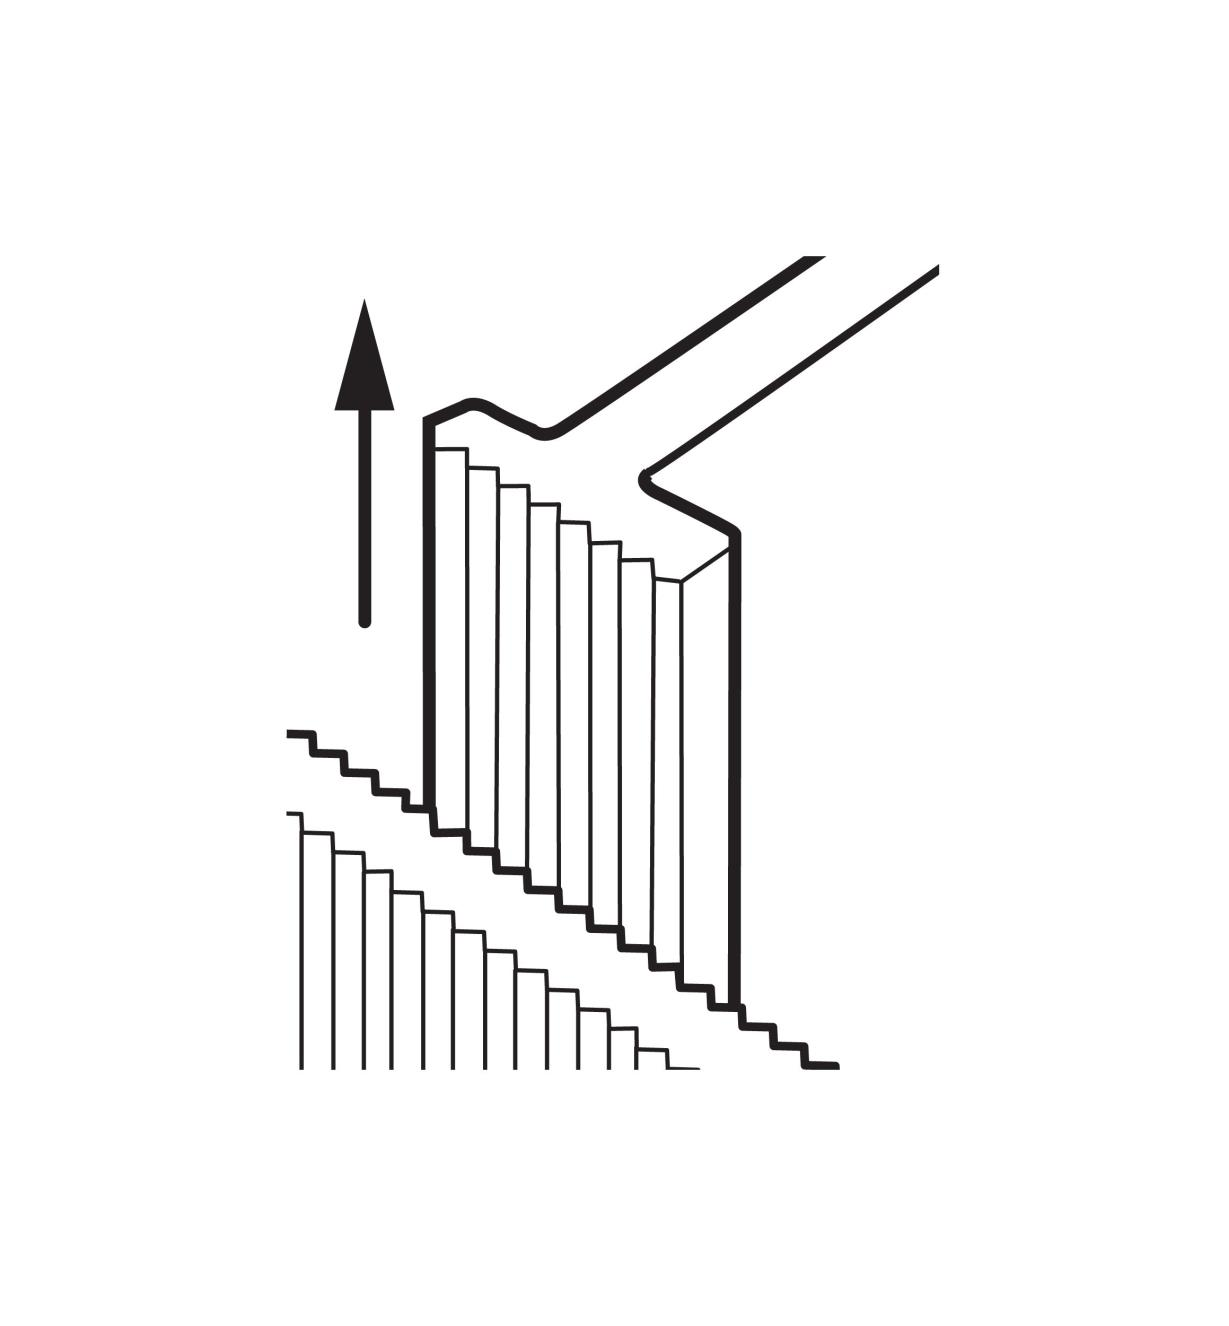 Illustration shows how to move the dividers by lifting them from the grooved walls